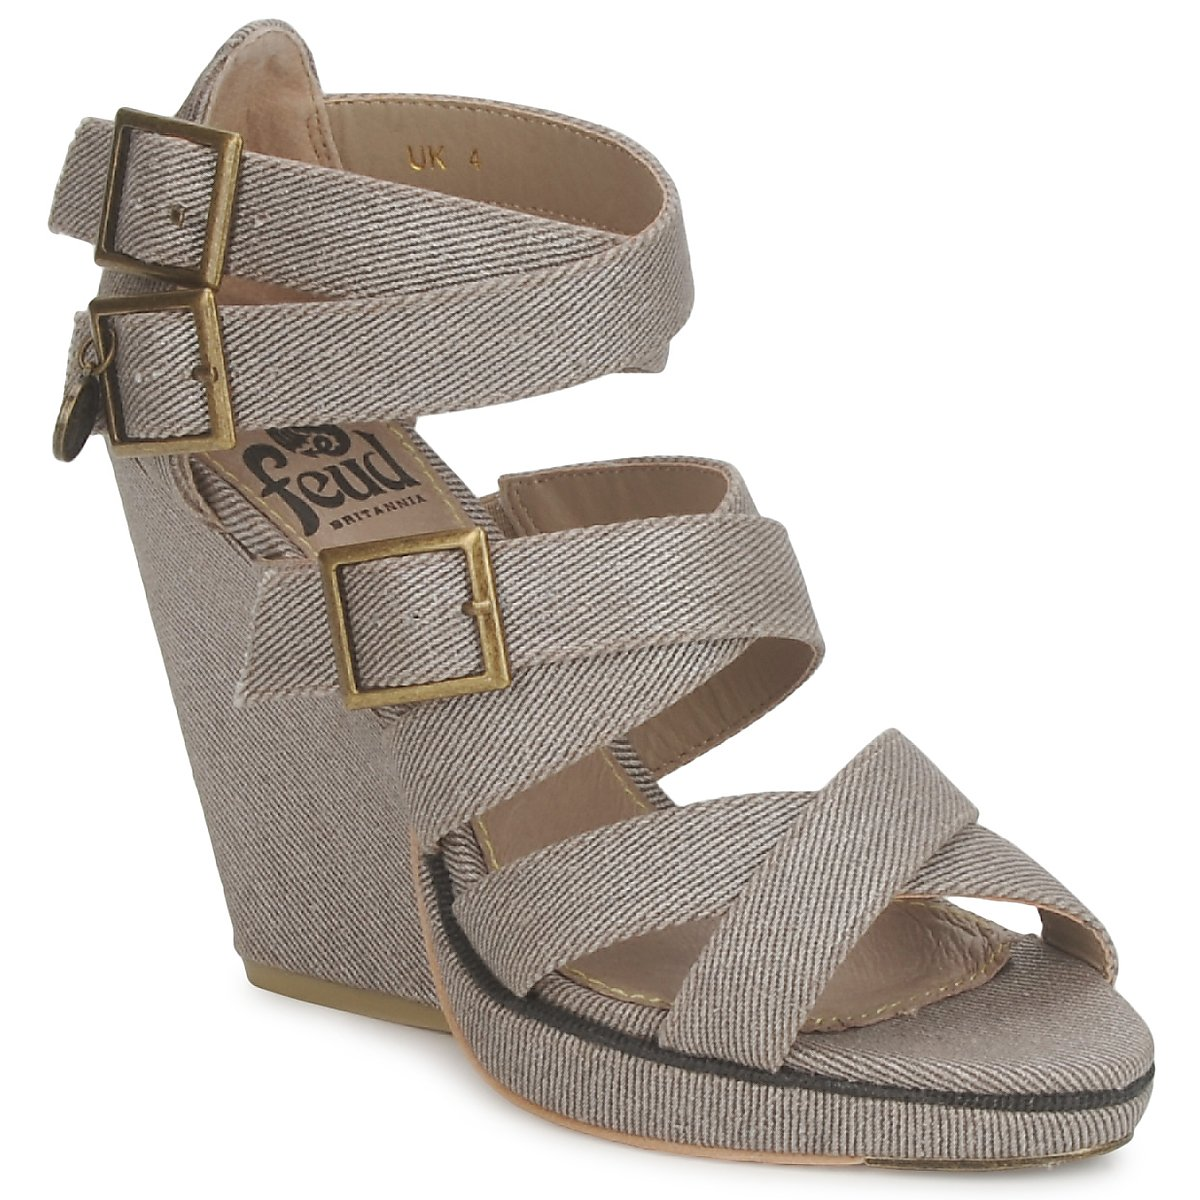 Sandale Feud WASP Taupe